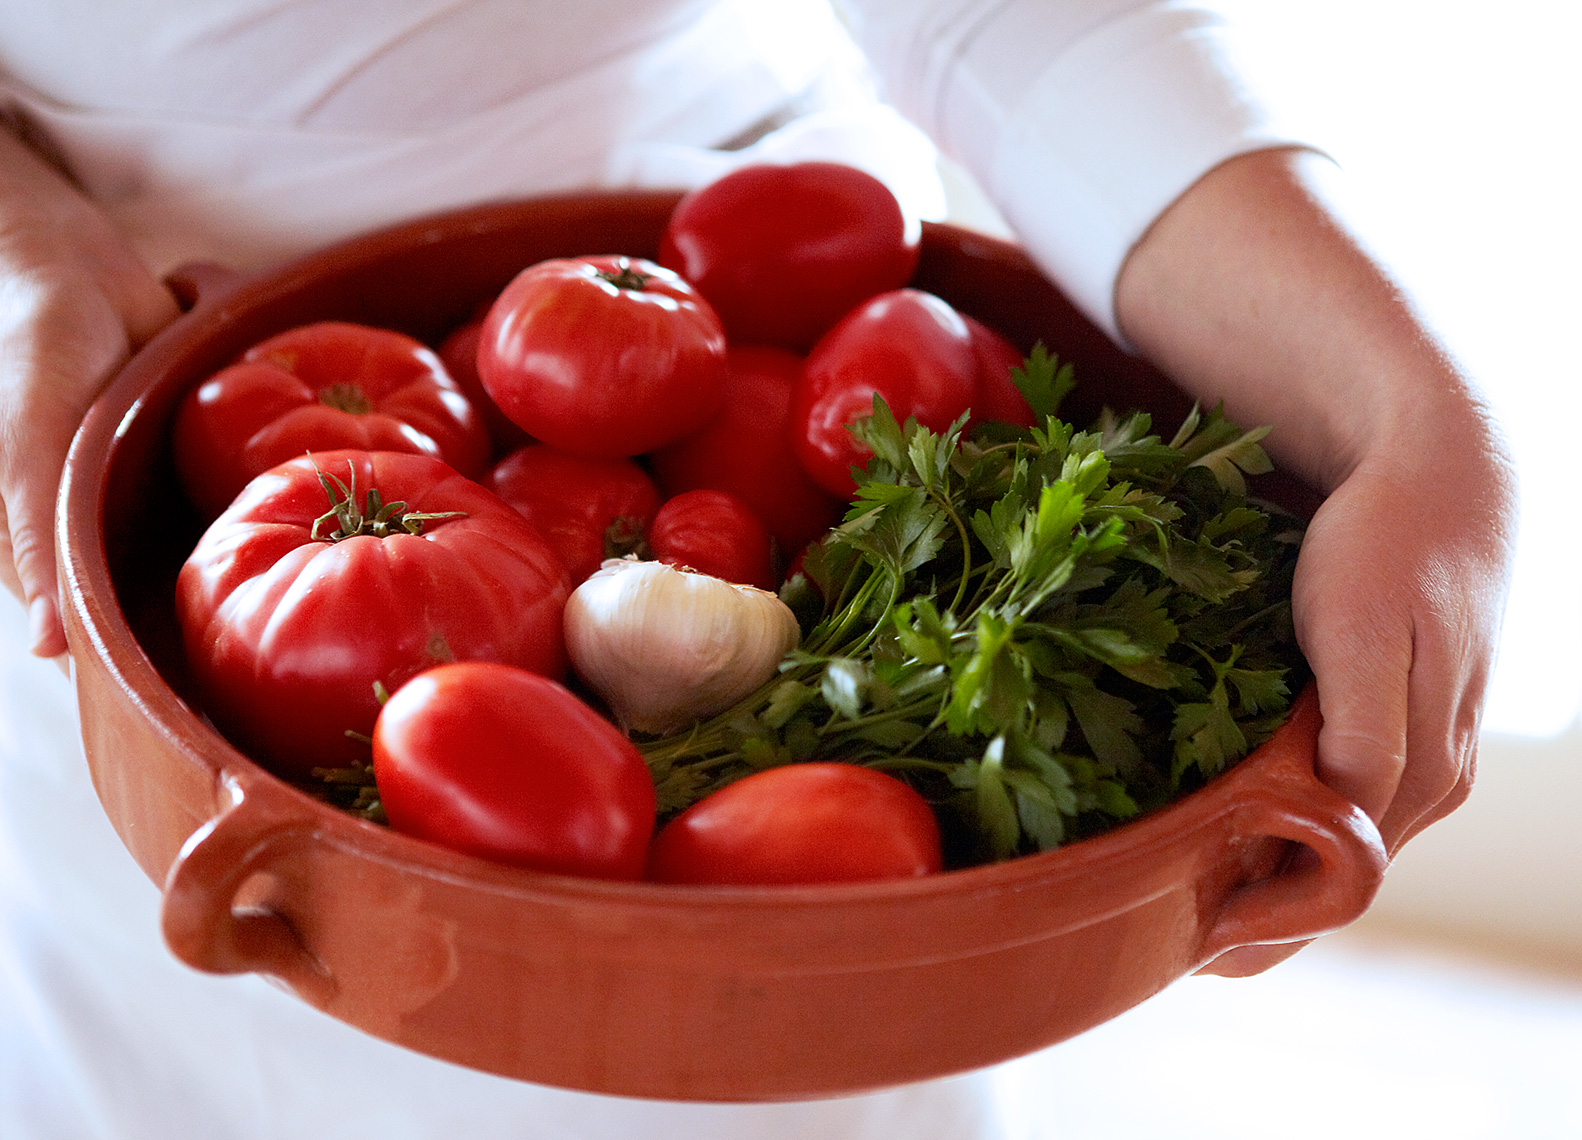 Woman Carrying Bowl of Tomatoes and Parsley